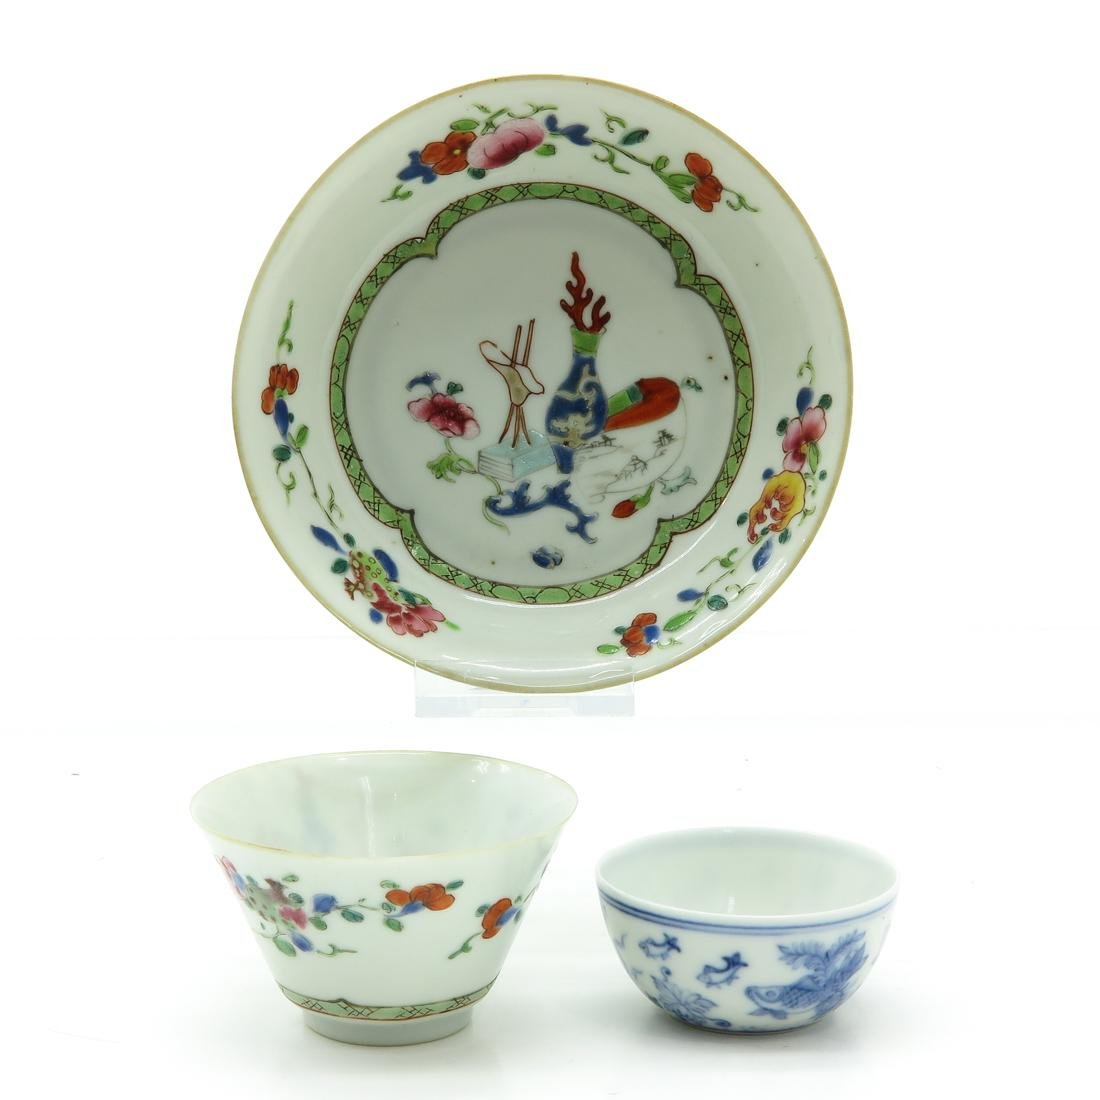 Cups and Saucer - 3